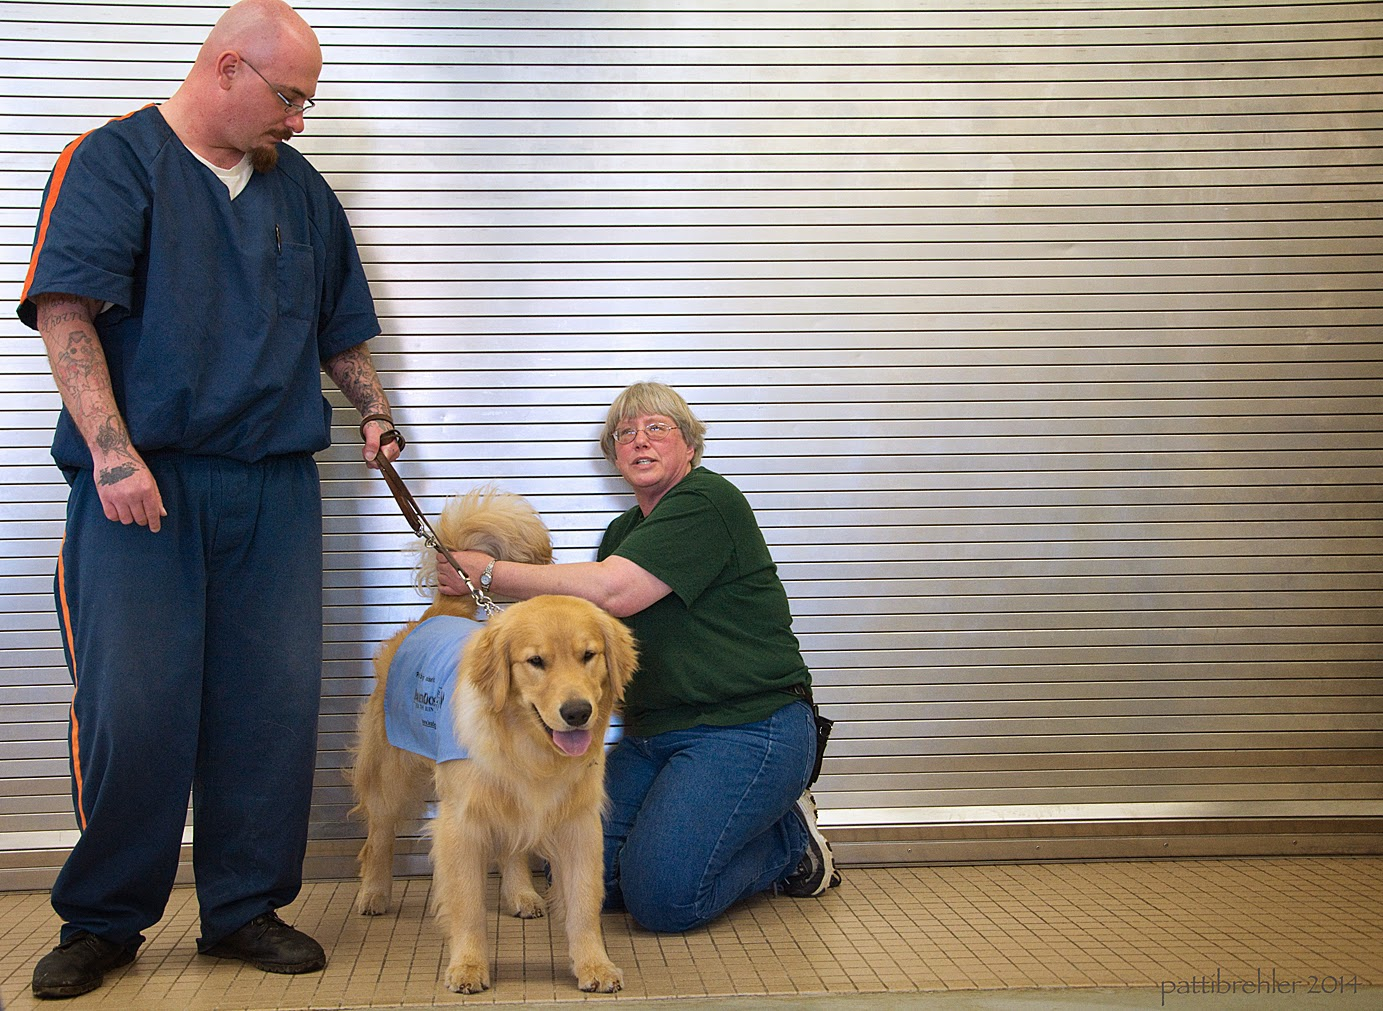 A man is standing on the left and he is wearing the blue prison uniform. He is bald and is wearing glasses, he is looking down and to the right at a golden retriever who is standing on his left facing the camera. The man is holding the dog's brown leather leash with his left hand. The golden is wearing the baby blue working jacket and he looks like he has a smile on his face, his tongue is hanging out. The woman is kneeling on the right side, holding the puppy's tail up with her left hand. She is facing the camera and talking.